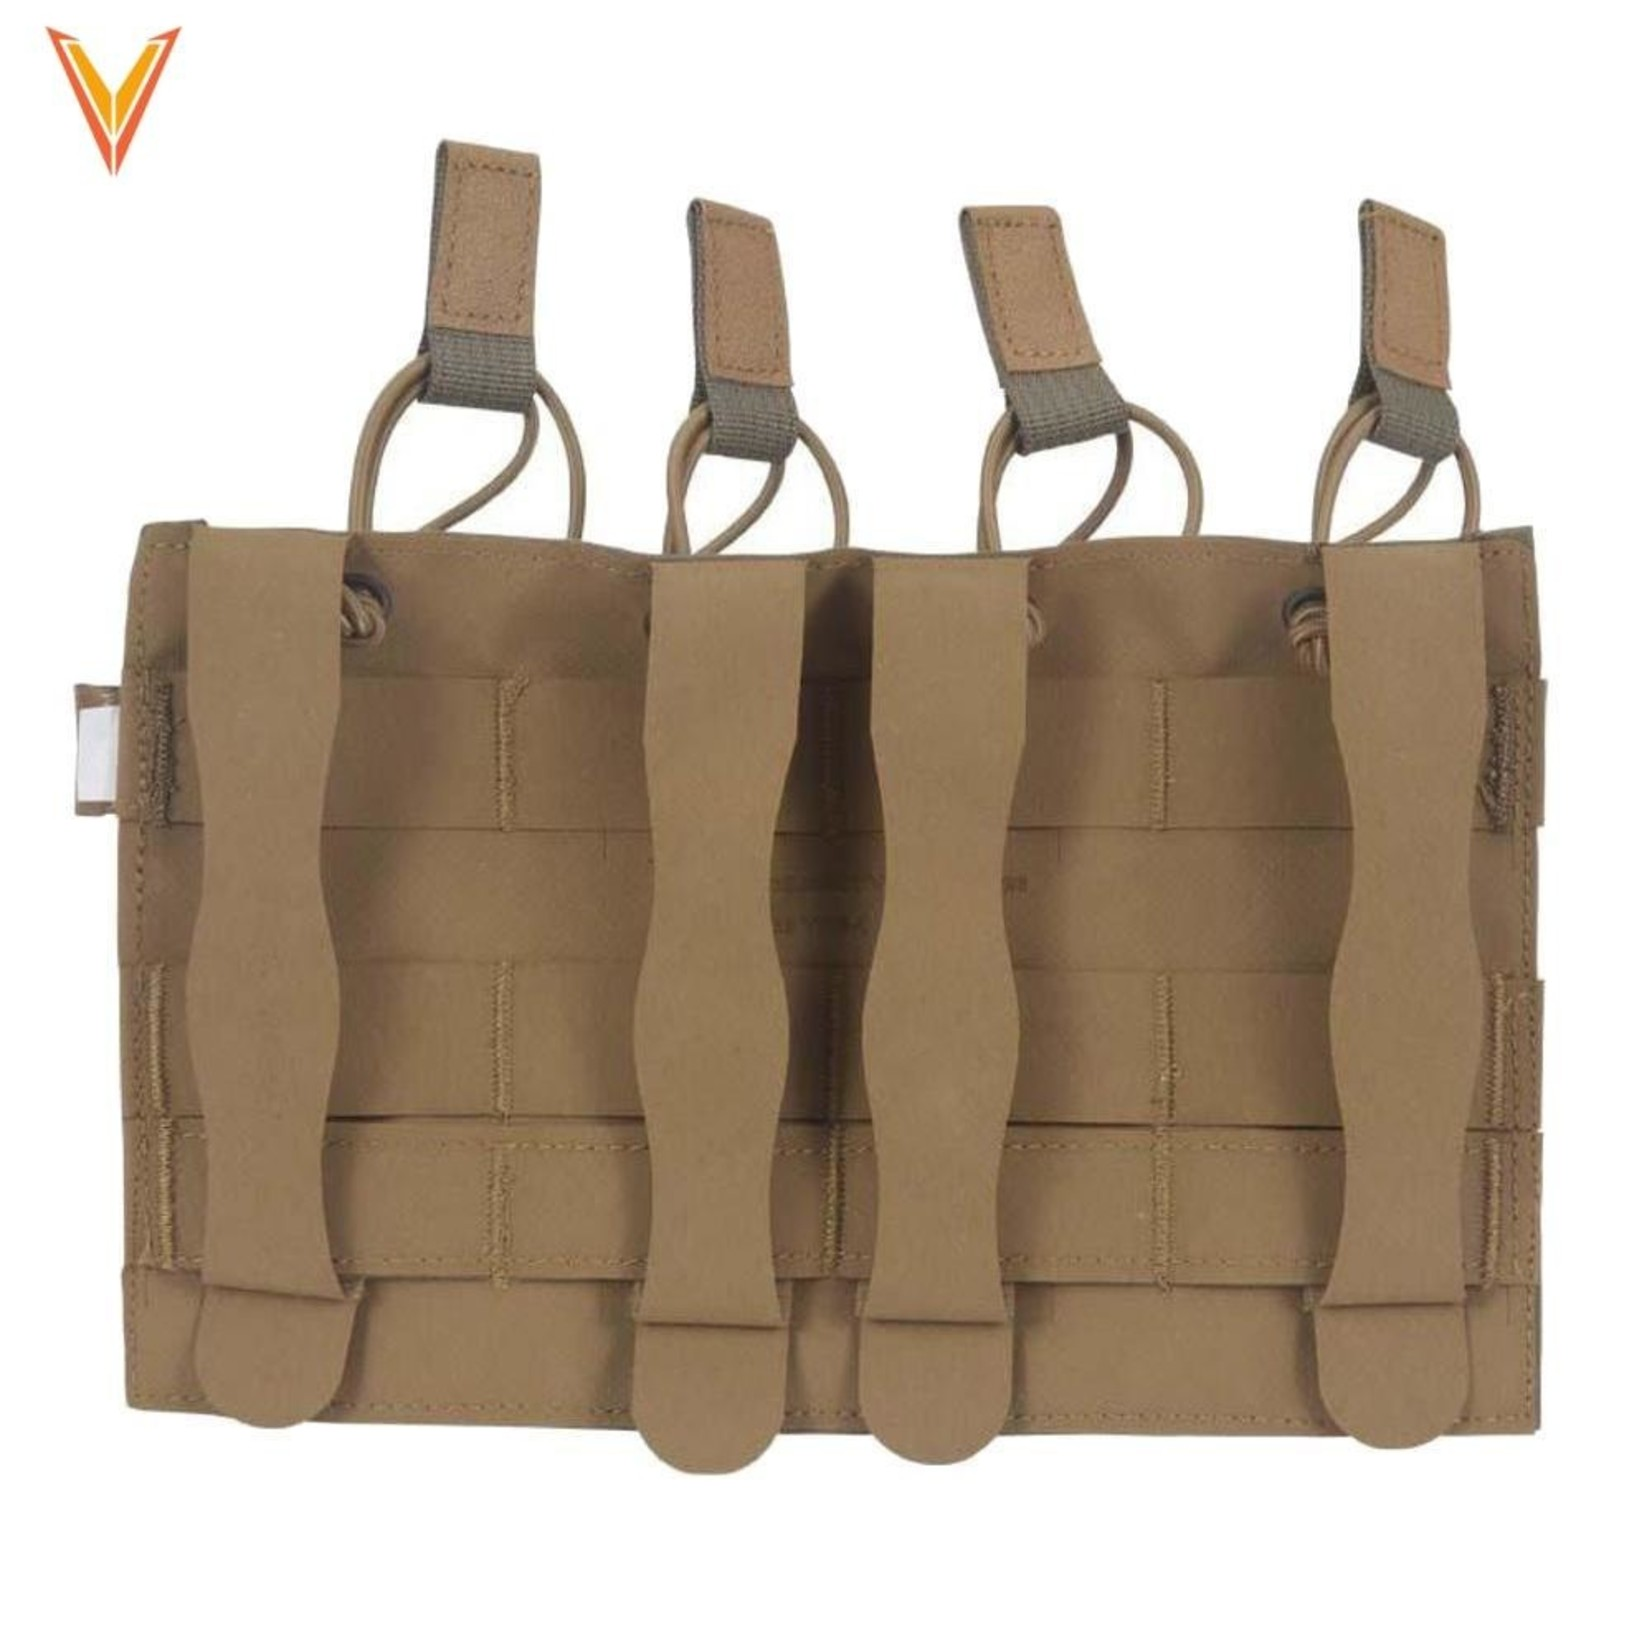 VELOCITY SYSTEMS HELIUM WHISPER QUAD MP7 MAGAZINE POUCH, OPEN TOP